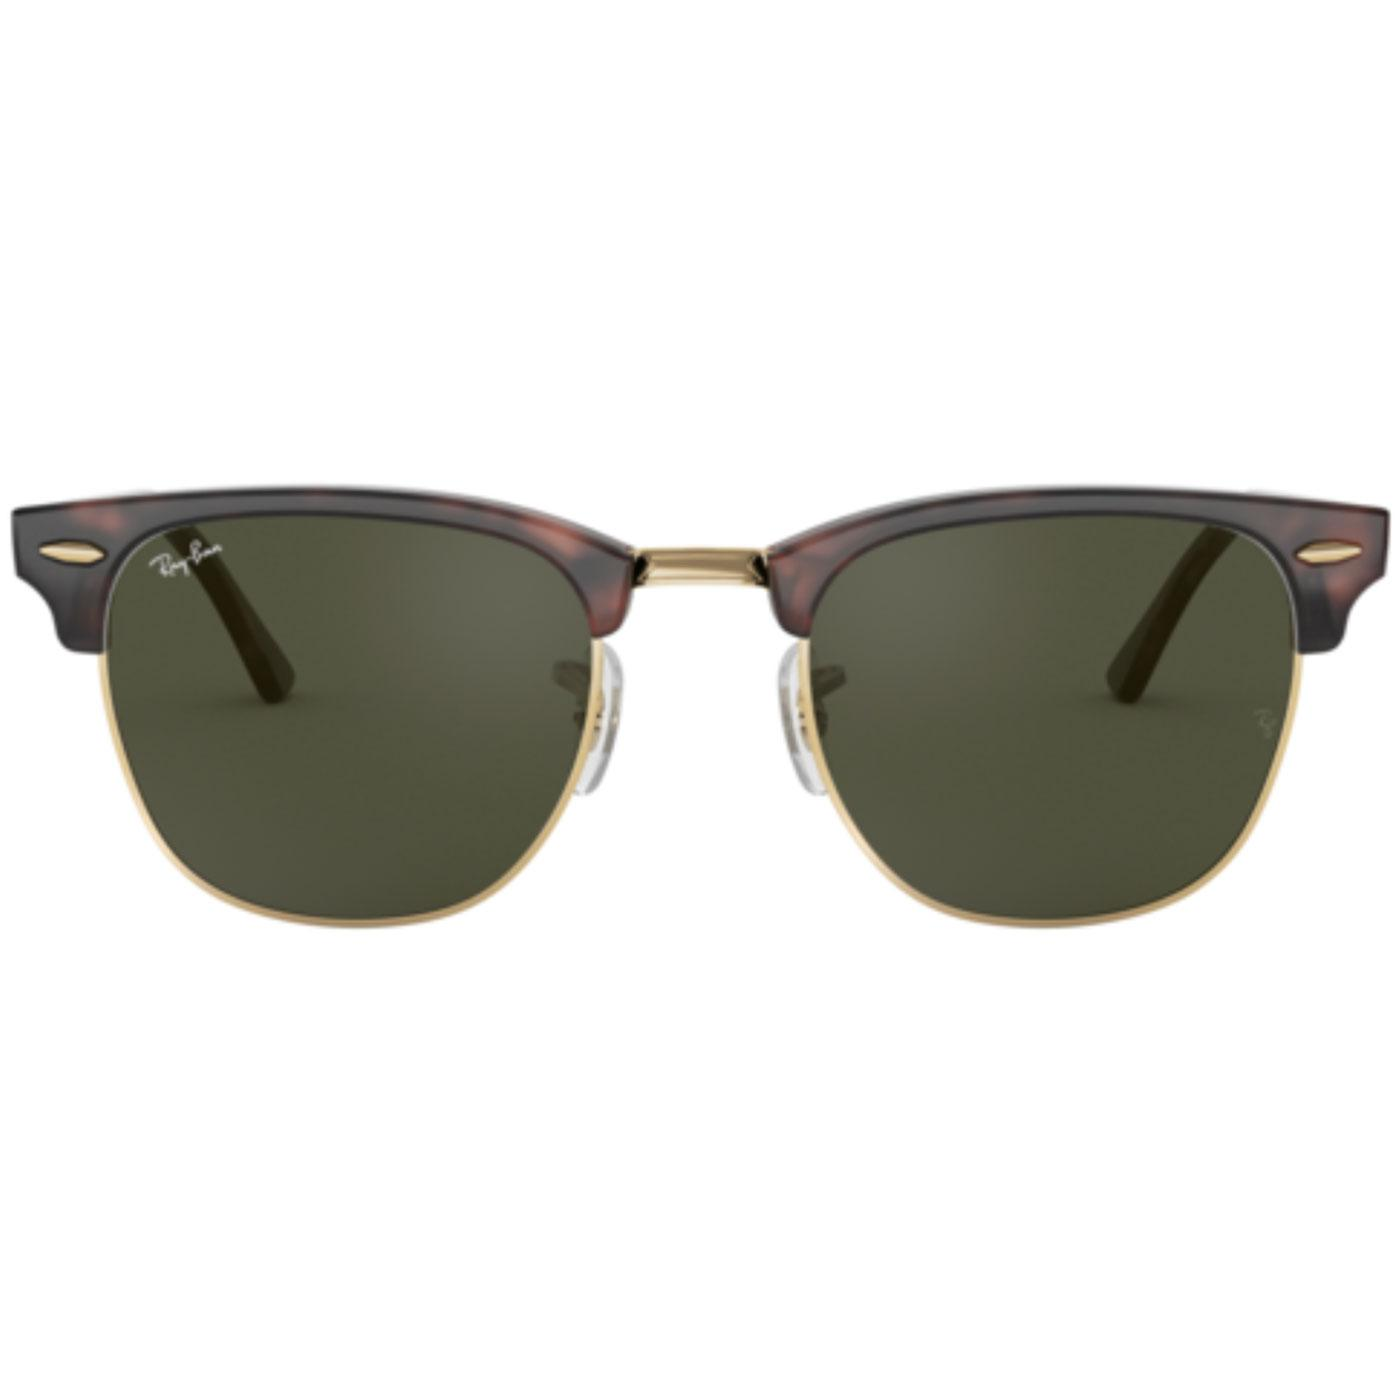 510a4acdb0a2 Ray-Ban Retro Mod Clubmaster Indie Sunglasses in Brown